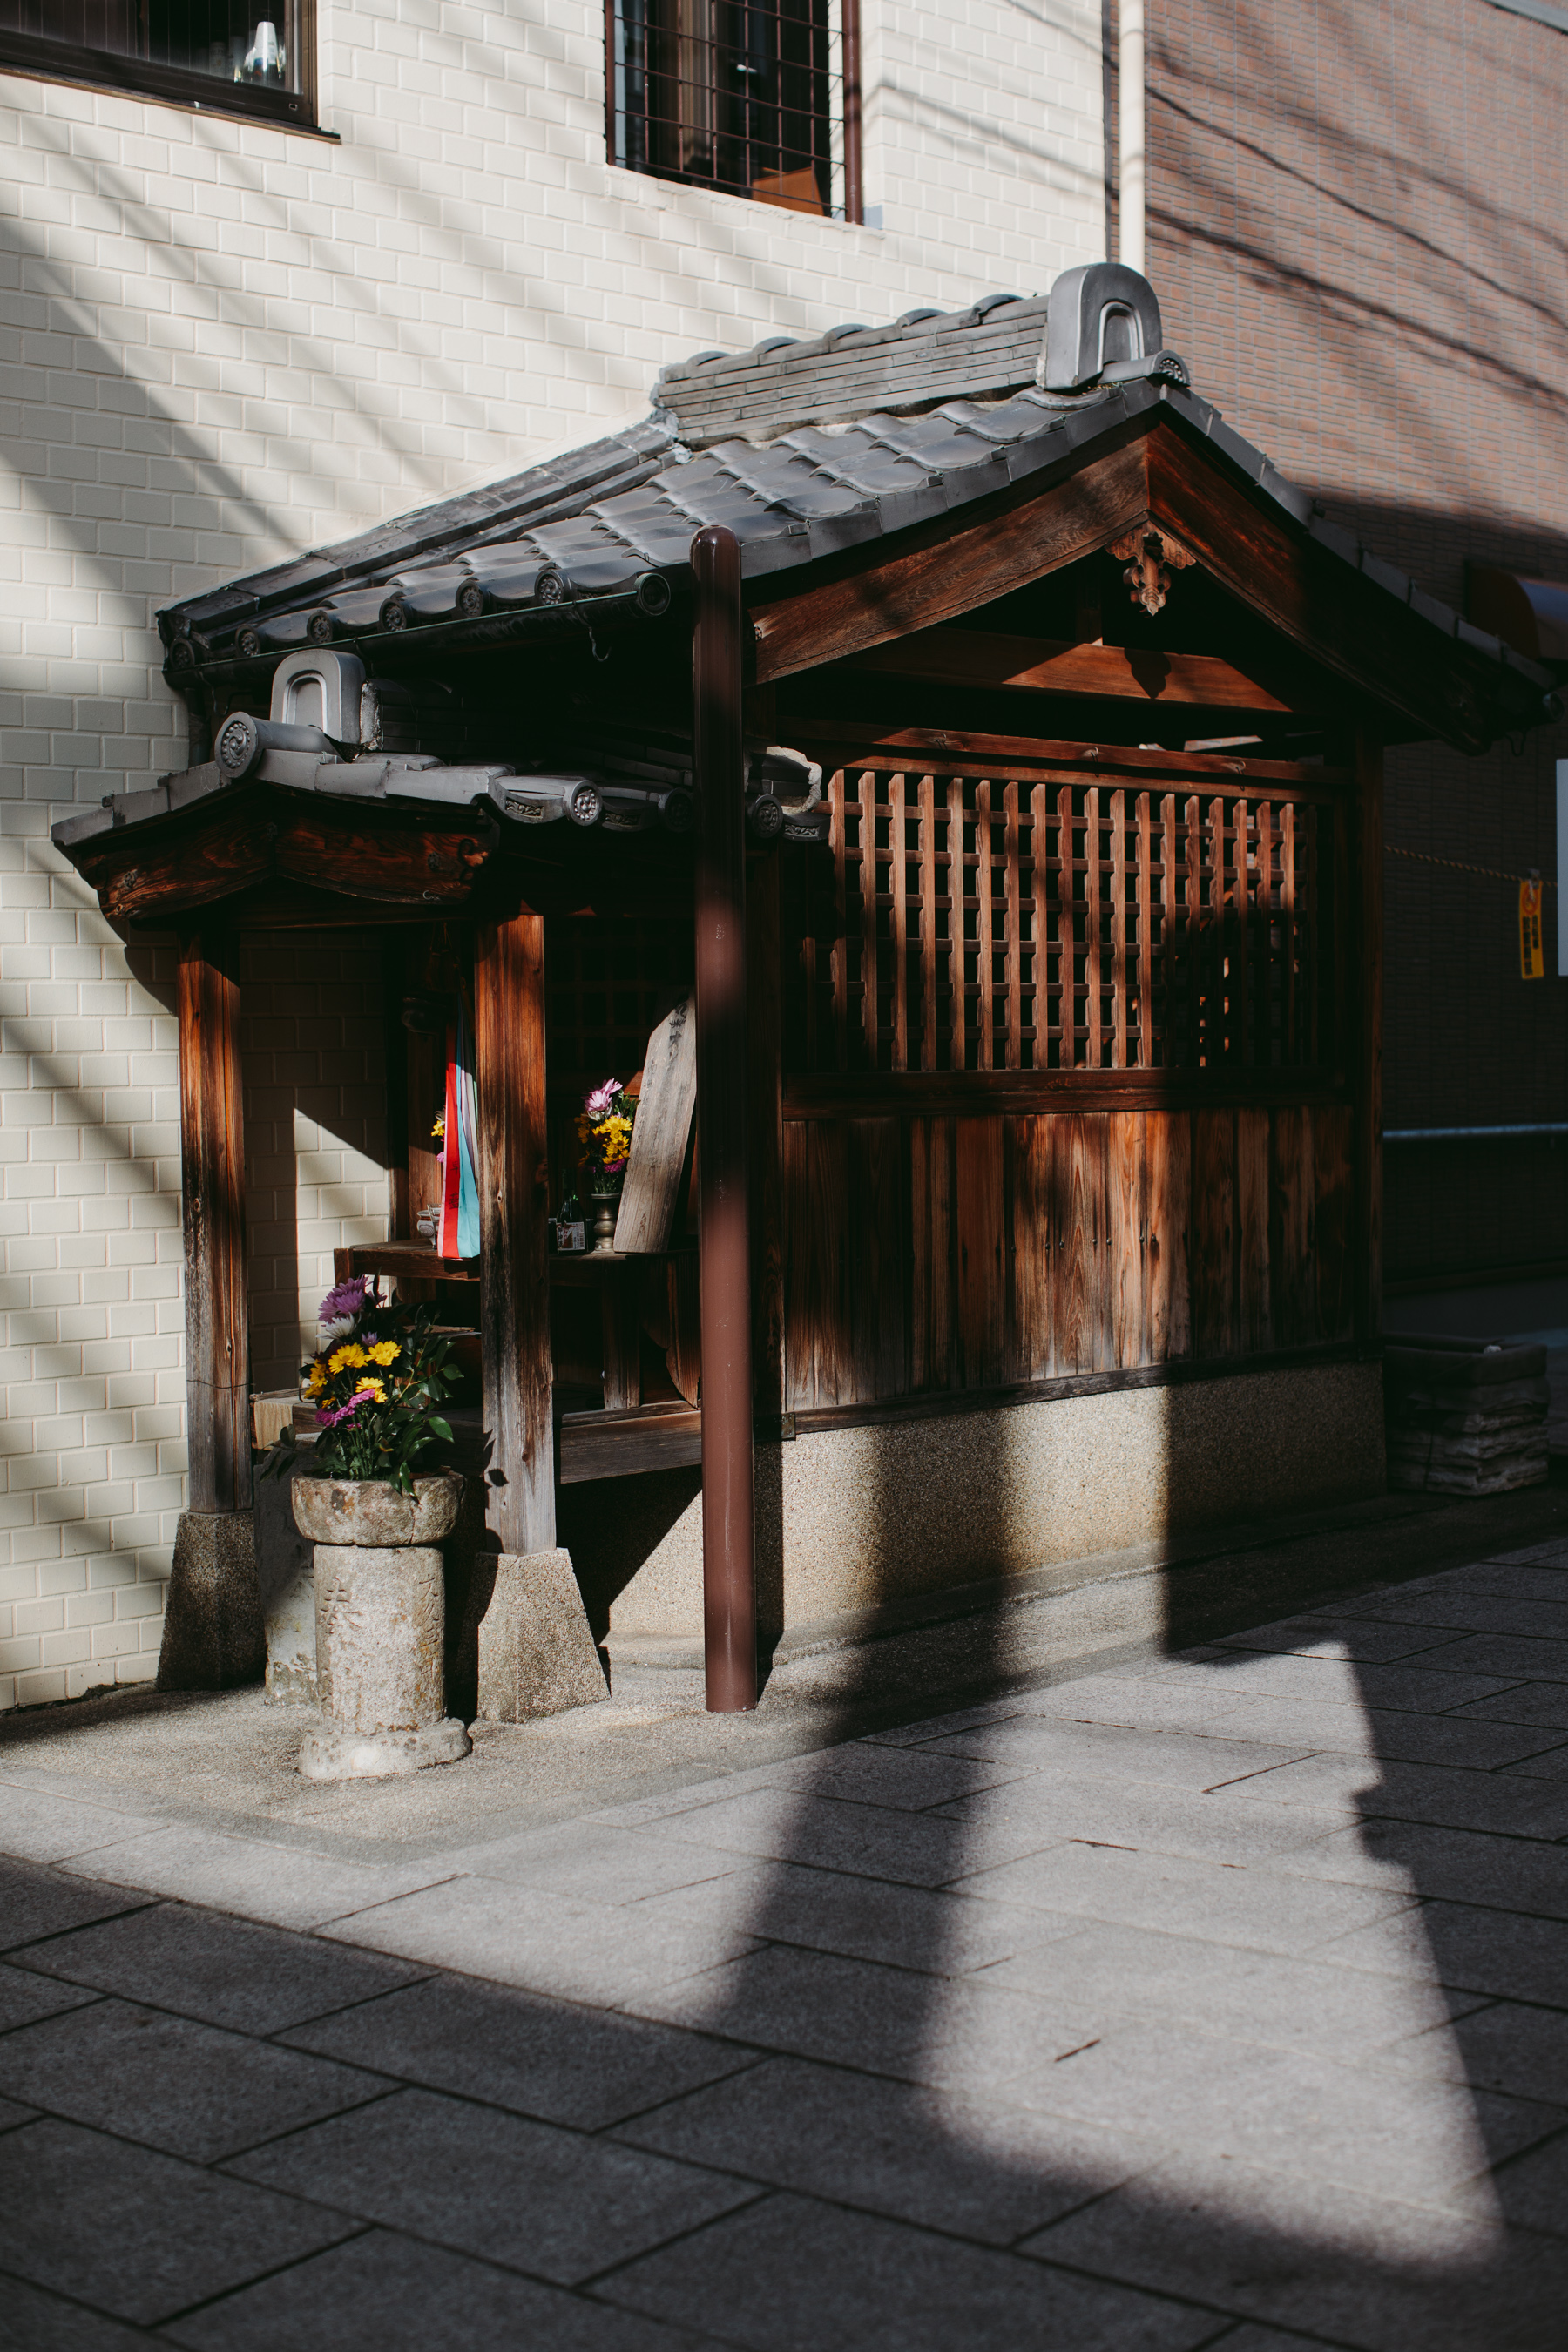 MikeSeehagel-commercial-lifestyle-travel-photography-Japan-74.jpg